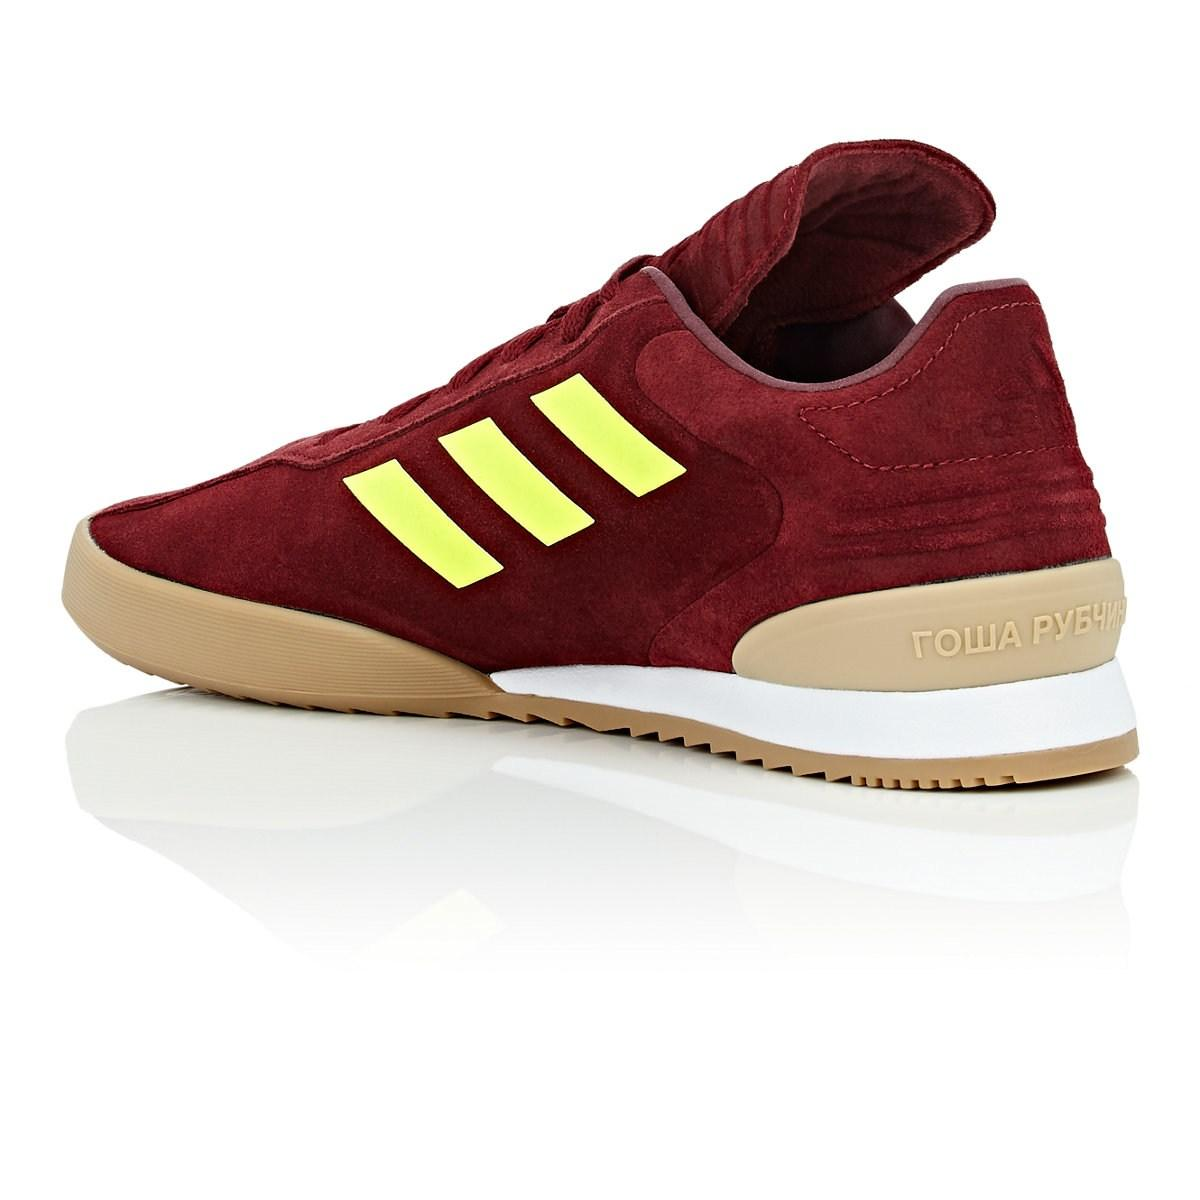 best service 200a4 f01e5 Gosha Rubchinskiy - Red Copa Super Suede Sneakers for Men - Lyst. View  fullscreen